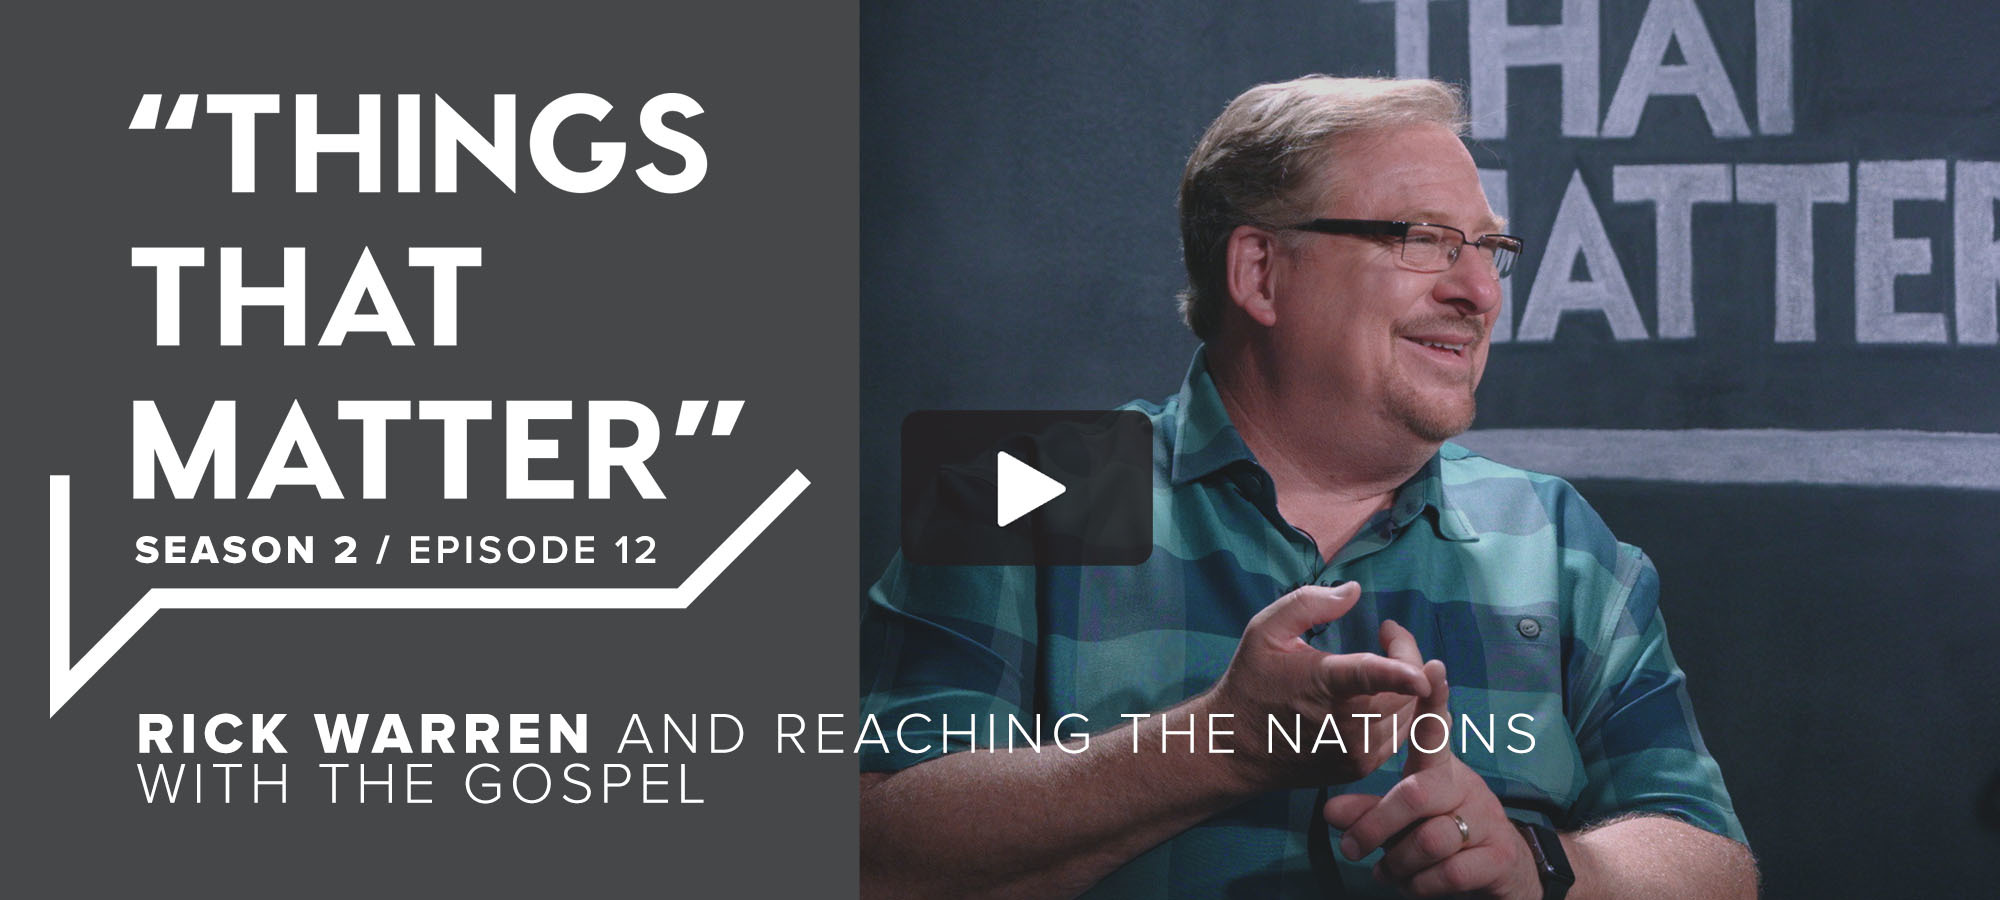 TTM S2 E12 - Rick Warren And Reaching The Nations With The Gospel